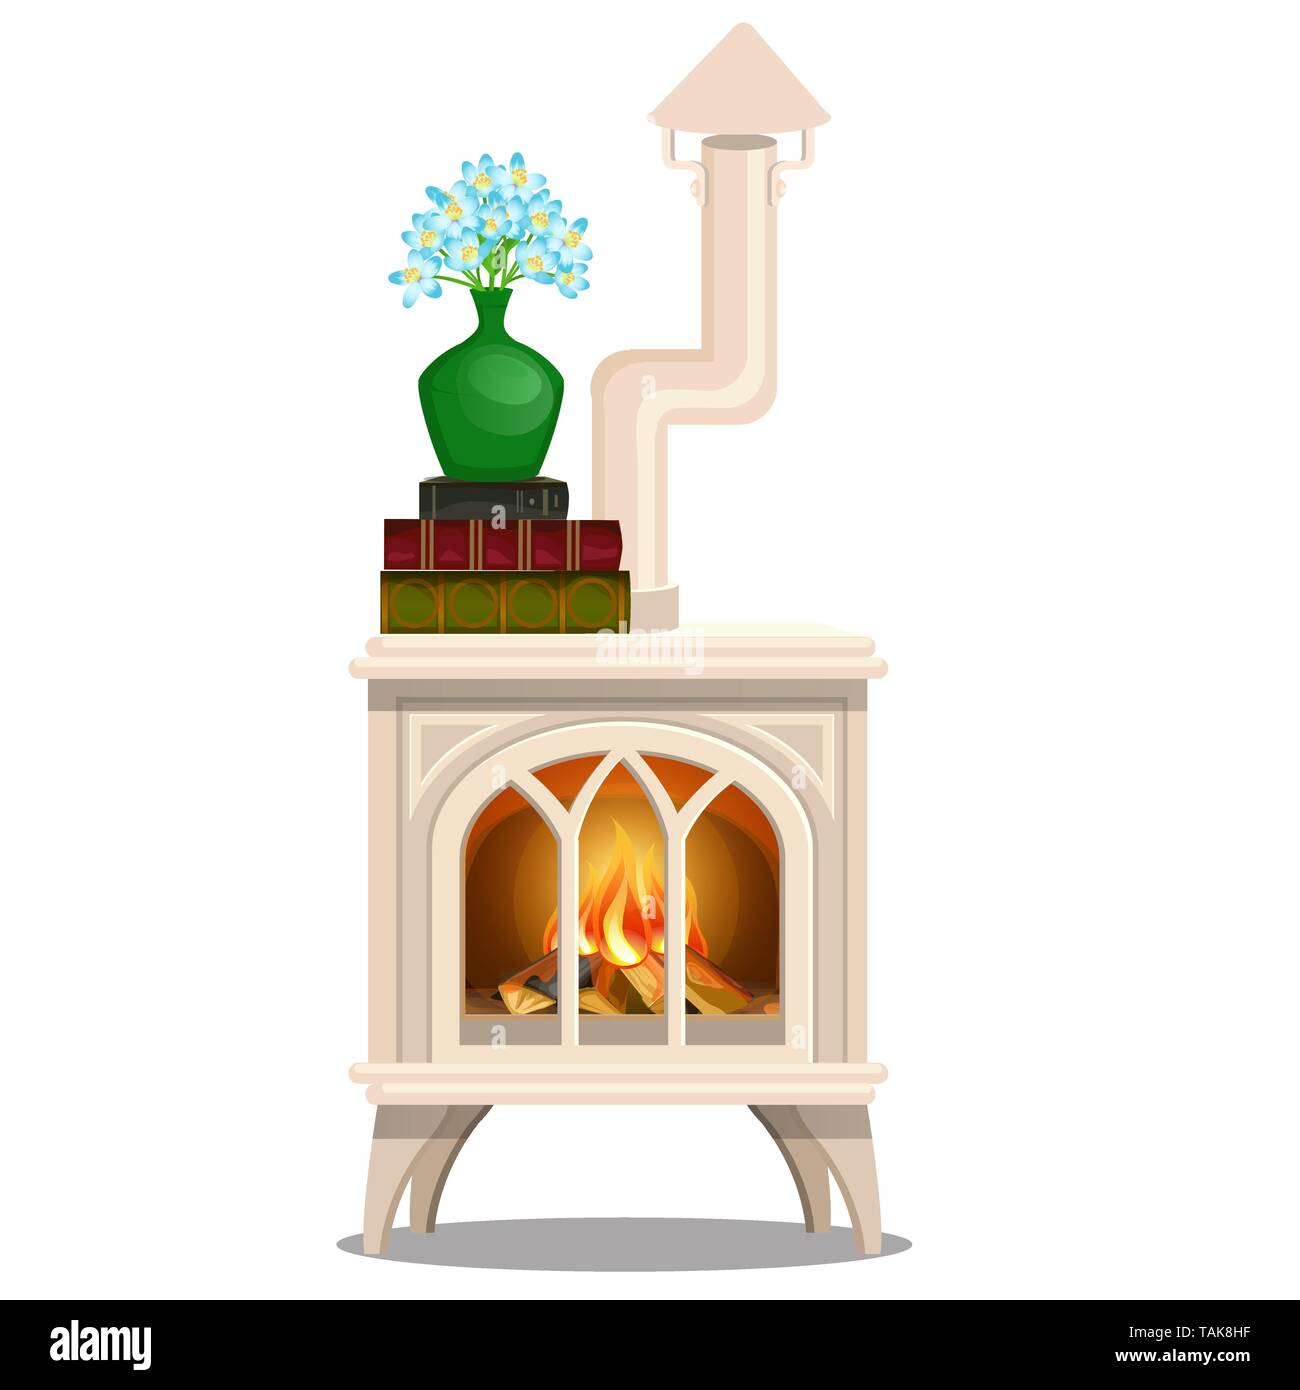 Elegant white stove with books and vase with blue flowers isolated on white background. Vector cartoon close-up illustration - Stock Image